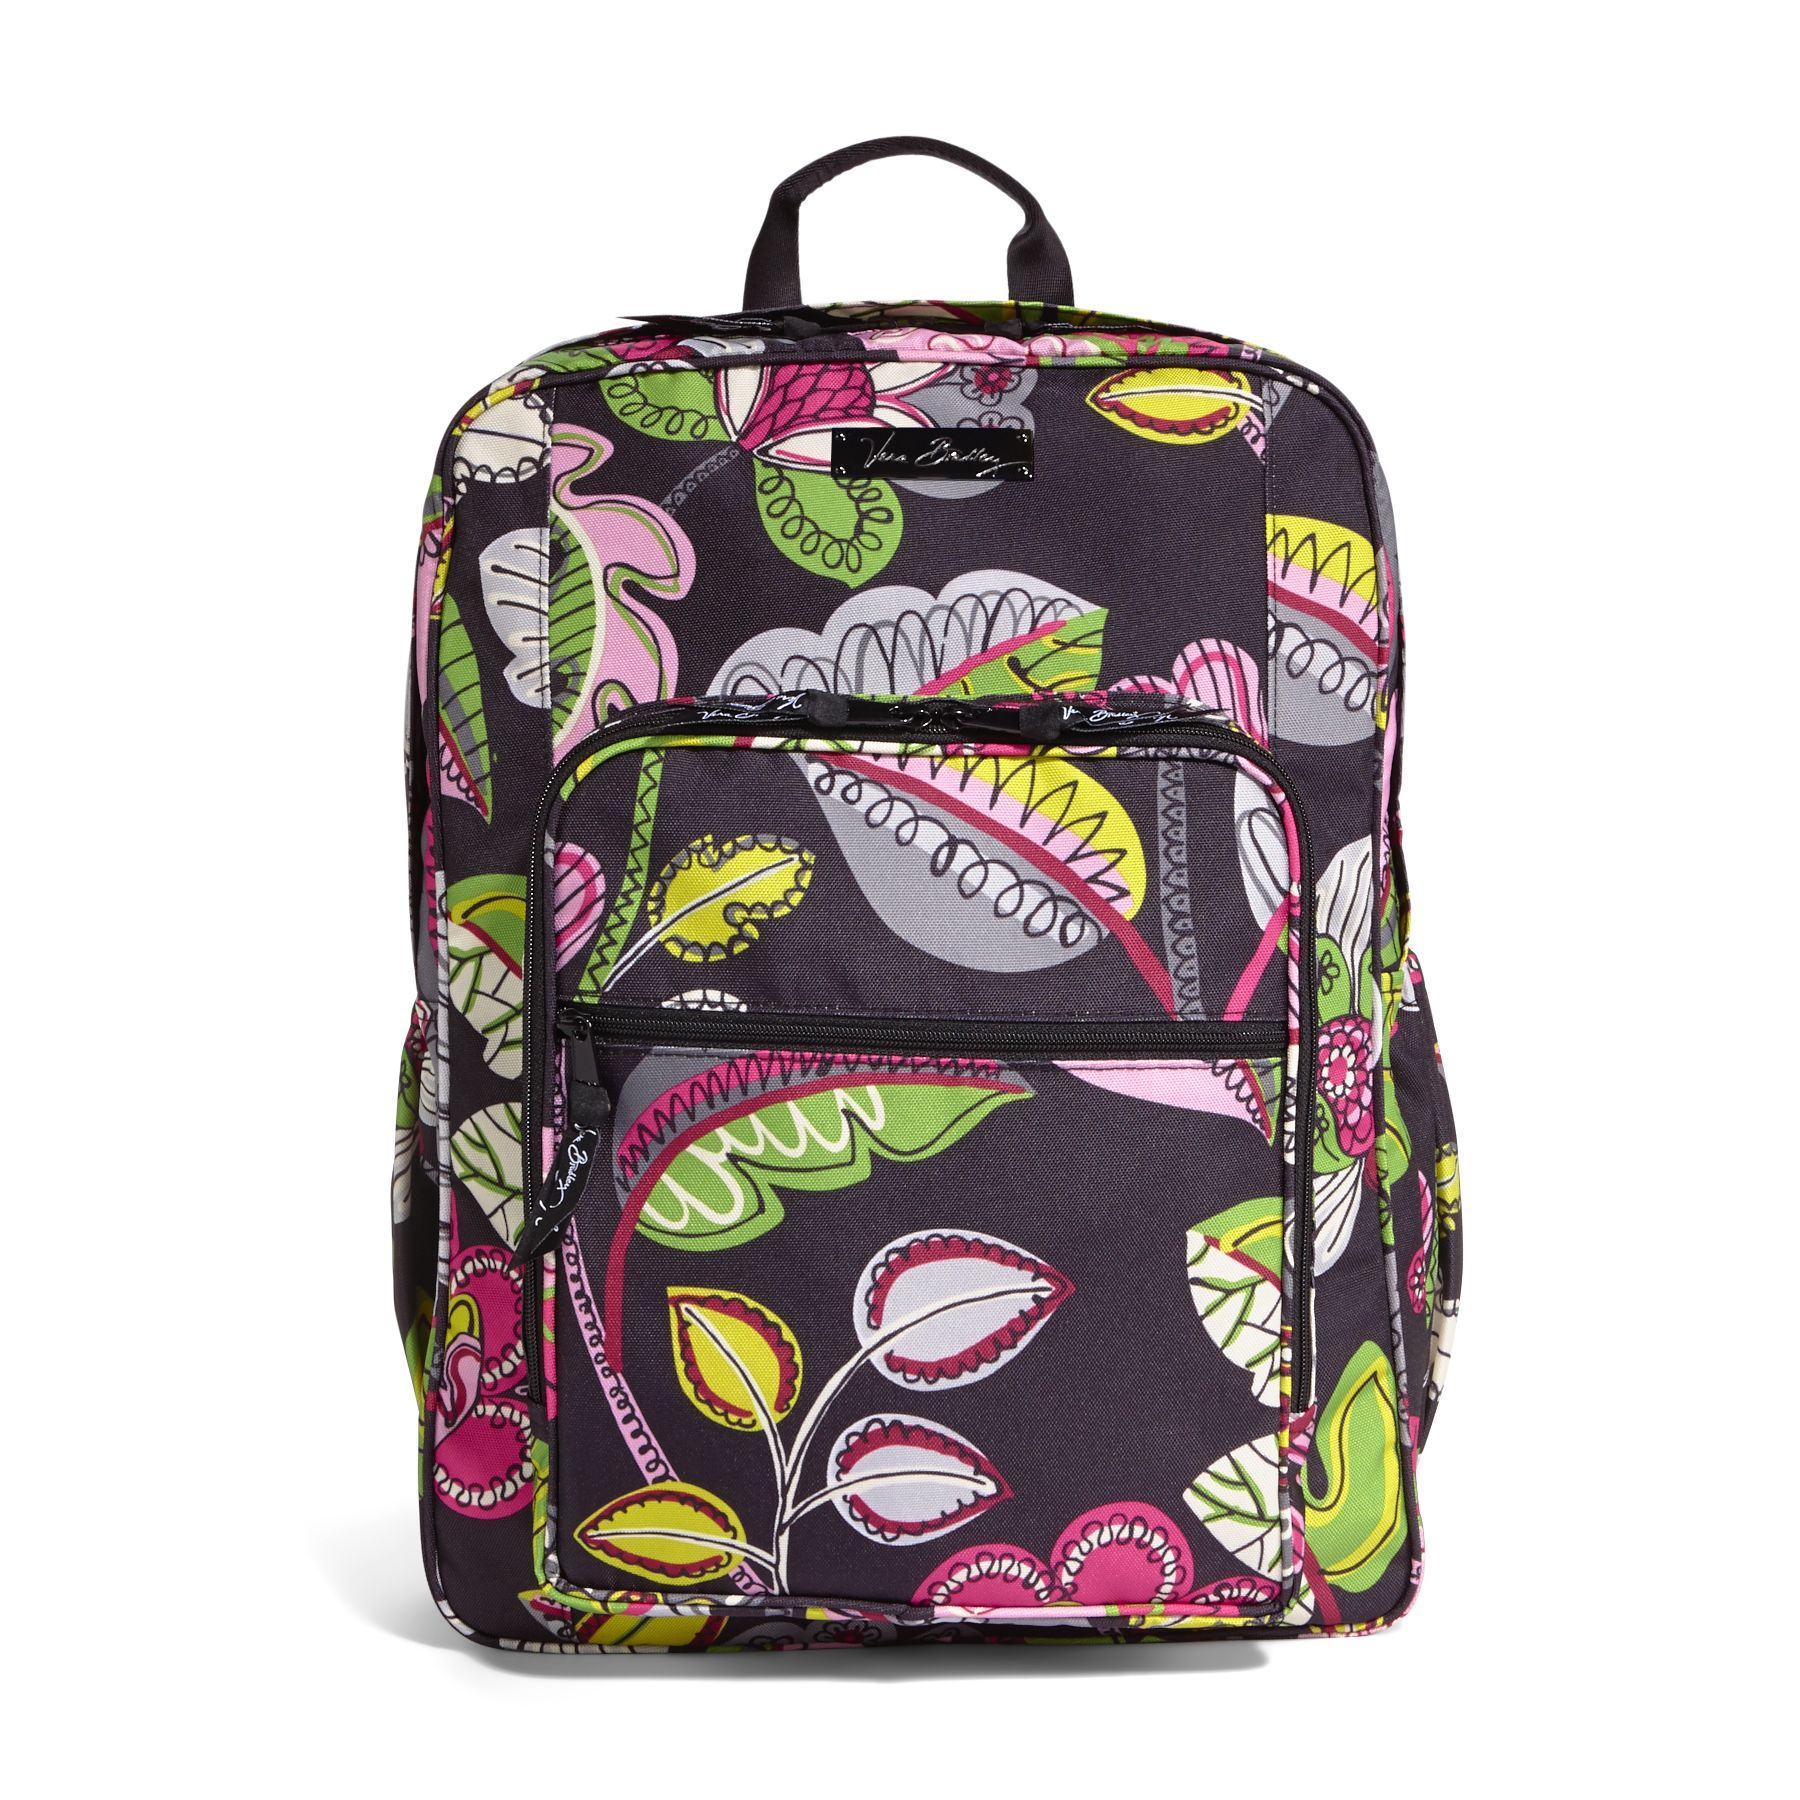 Vera Bradley Lighten Up Large Backpack in Moon Blooms